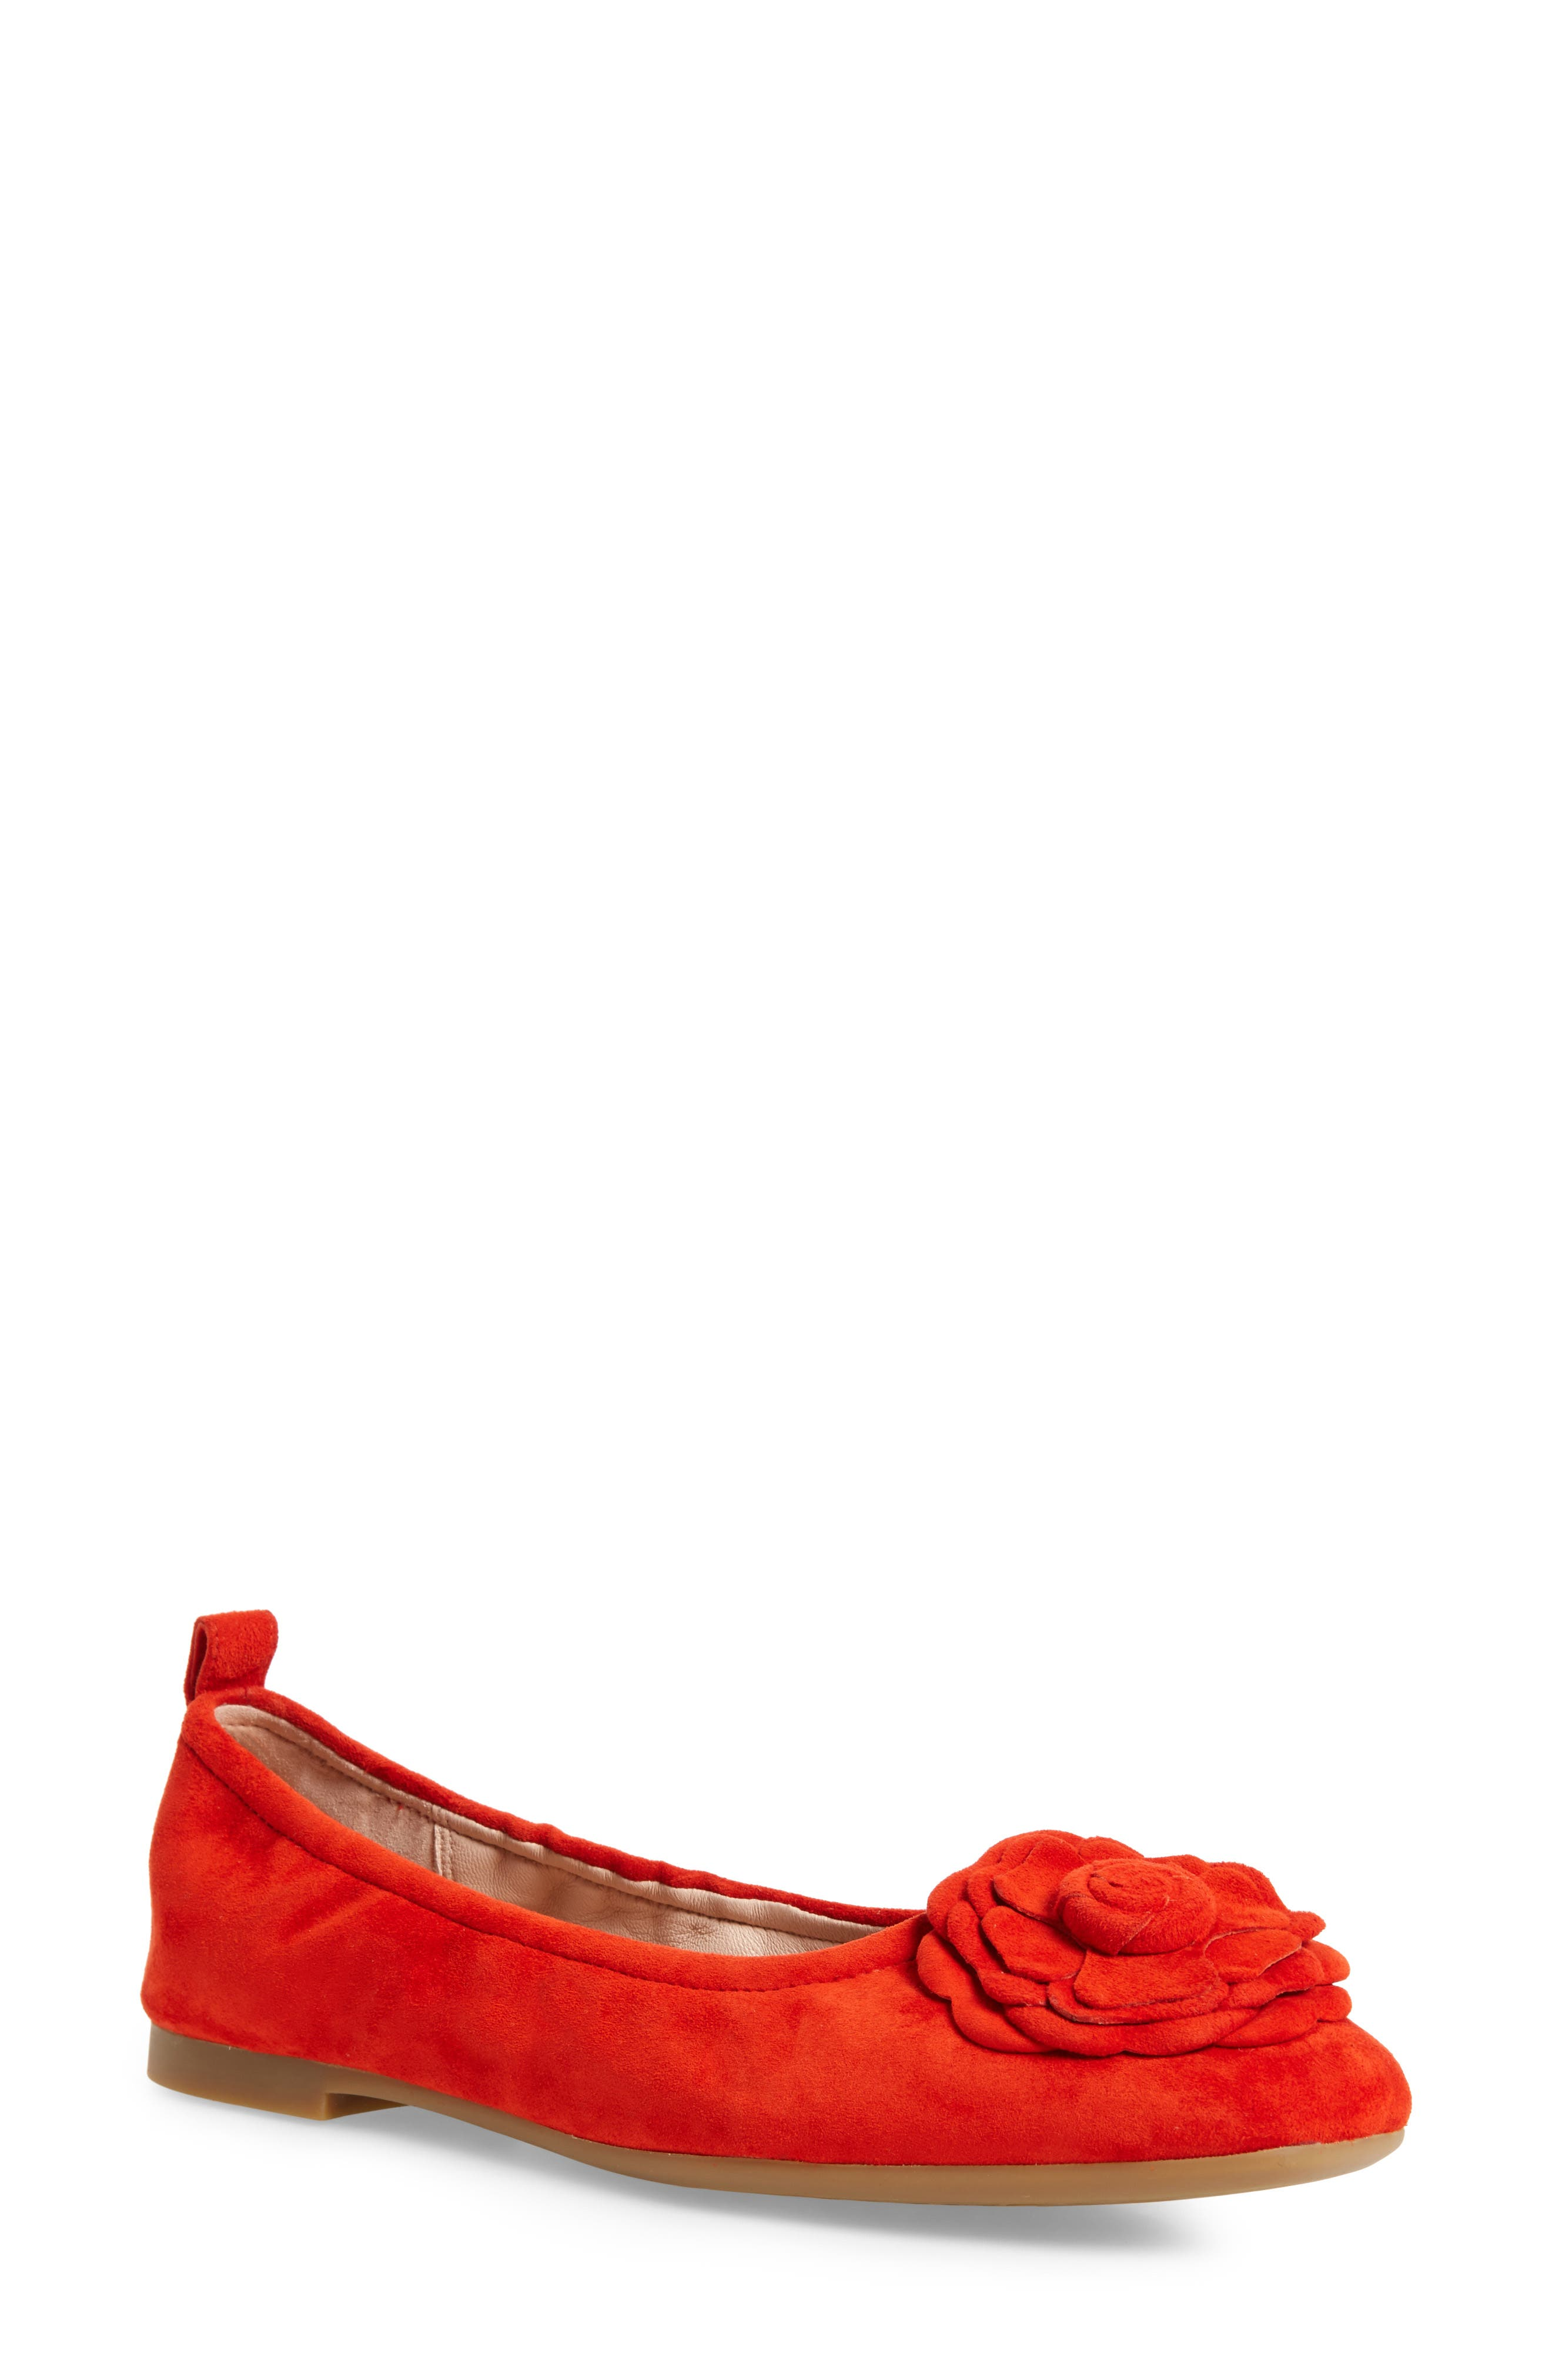 Rosalyn Ballet Flat,                             Main thumbnail 1, color,                             Spicy Suede